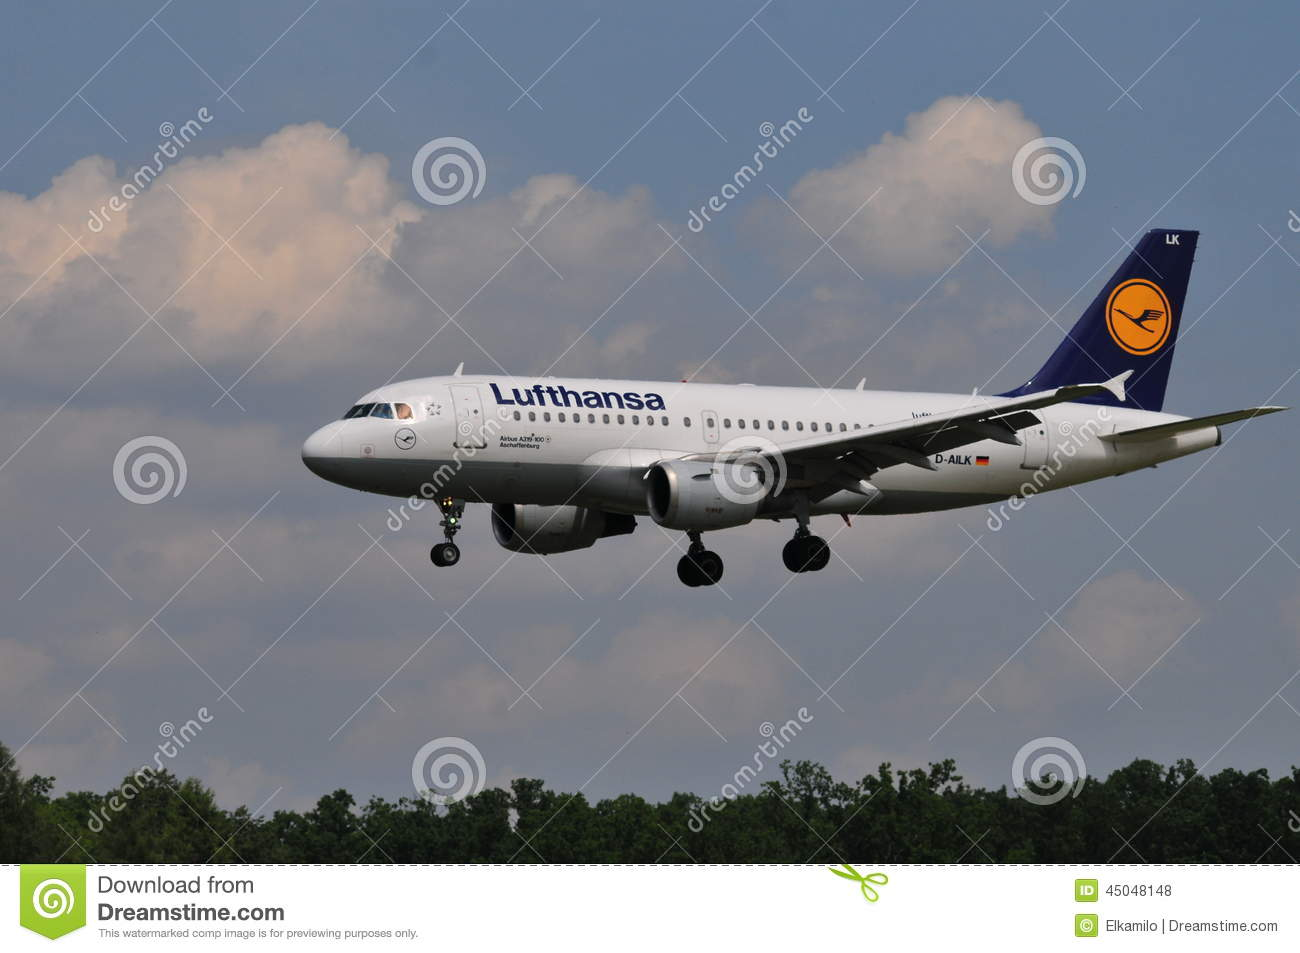 Lufthansa flight editorial stock photo image 45048148 for Lufthansa direct flights to germany